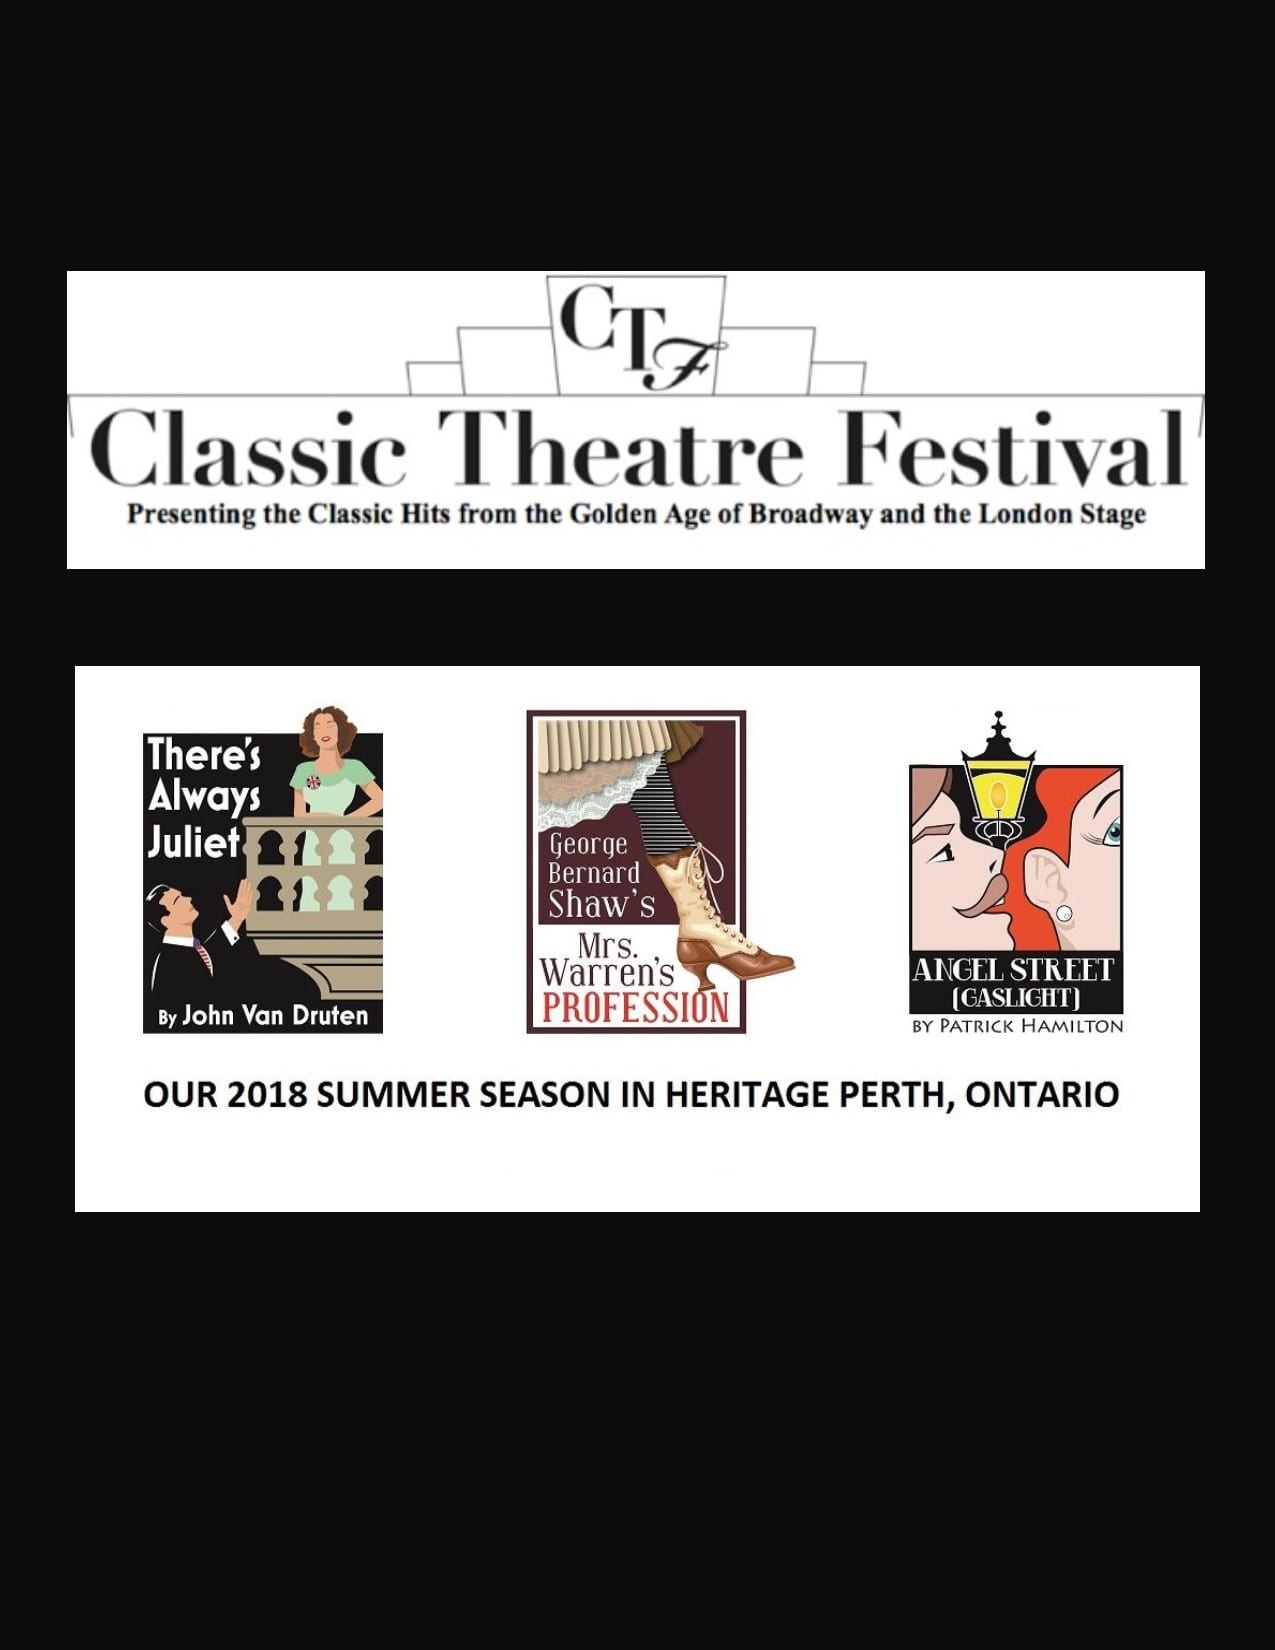 2 TICKET VOUCHERS  Donated by: CLASSIC THEATRE FESTIVAL  Valued at: $78  Buy It Now: $23